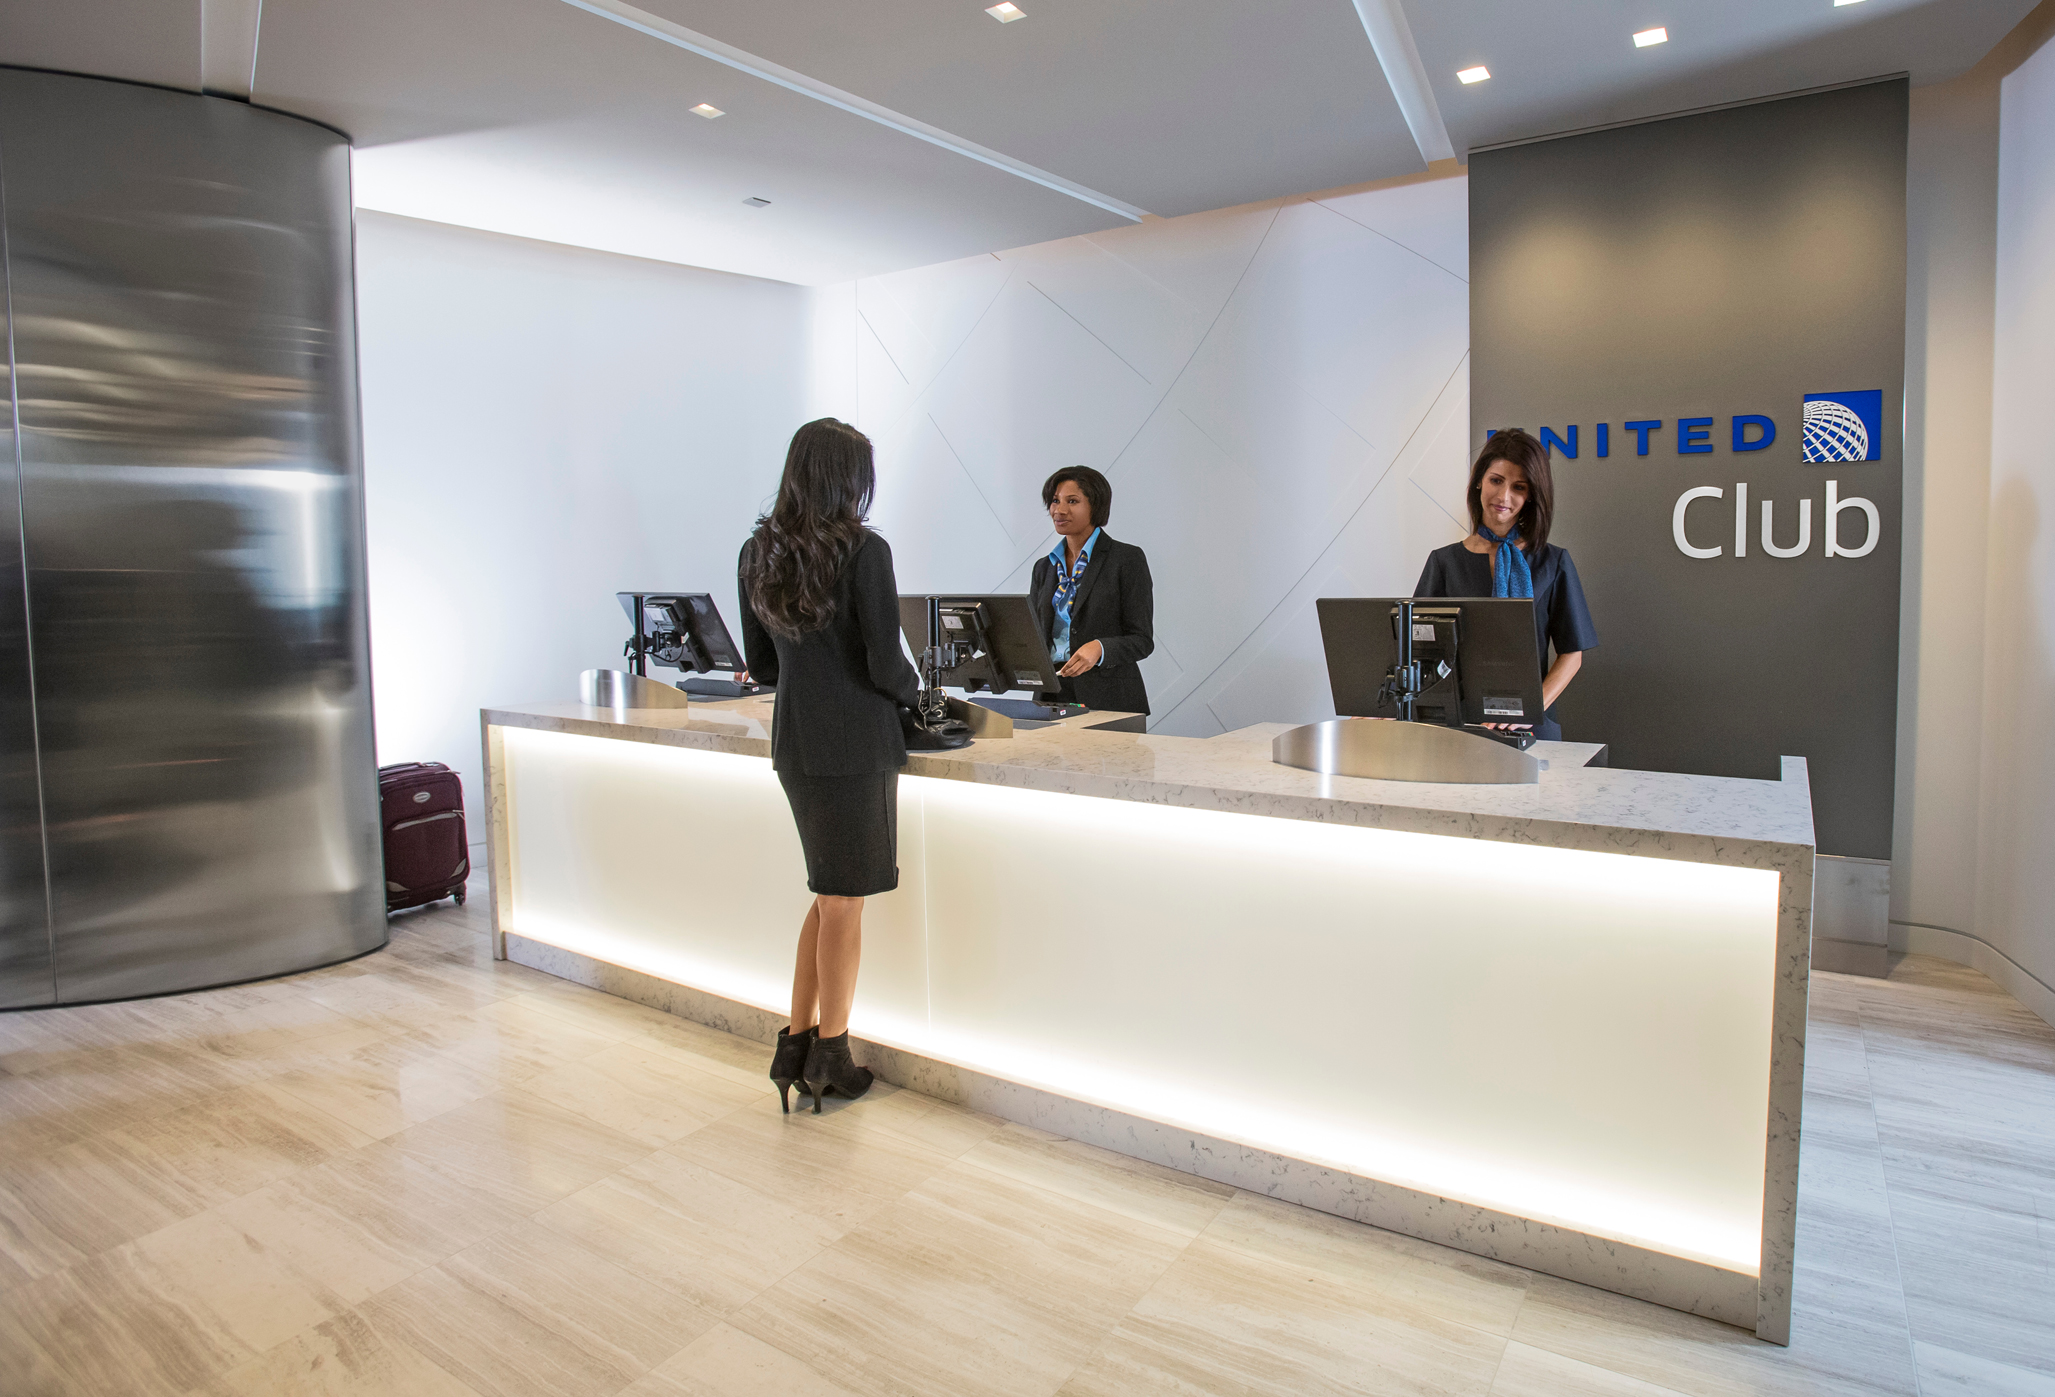 Free United Club Access for 1 Year: United's Visa Club Card Promotion–Putting a value on Club access and Skunky Beer